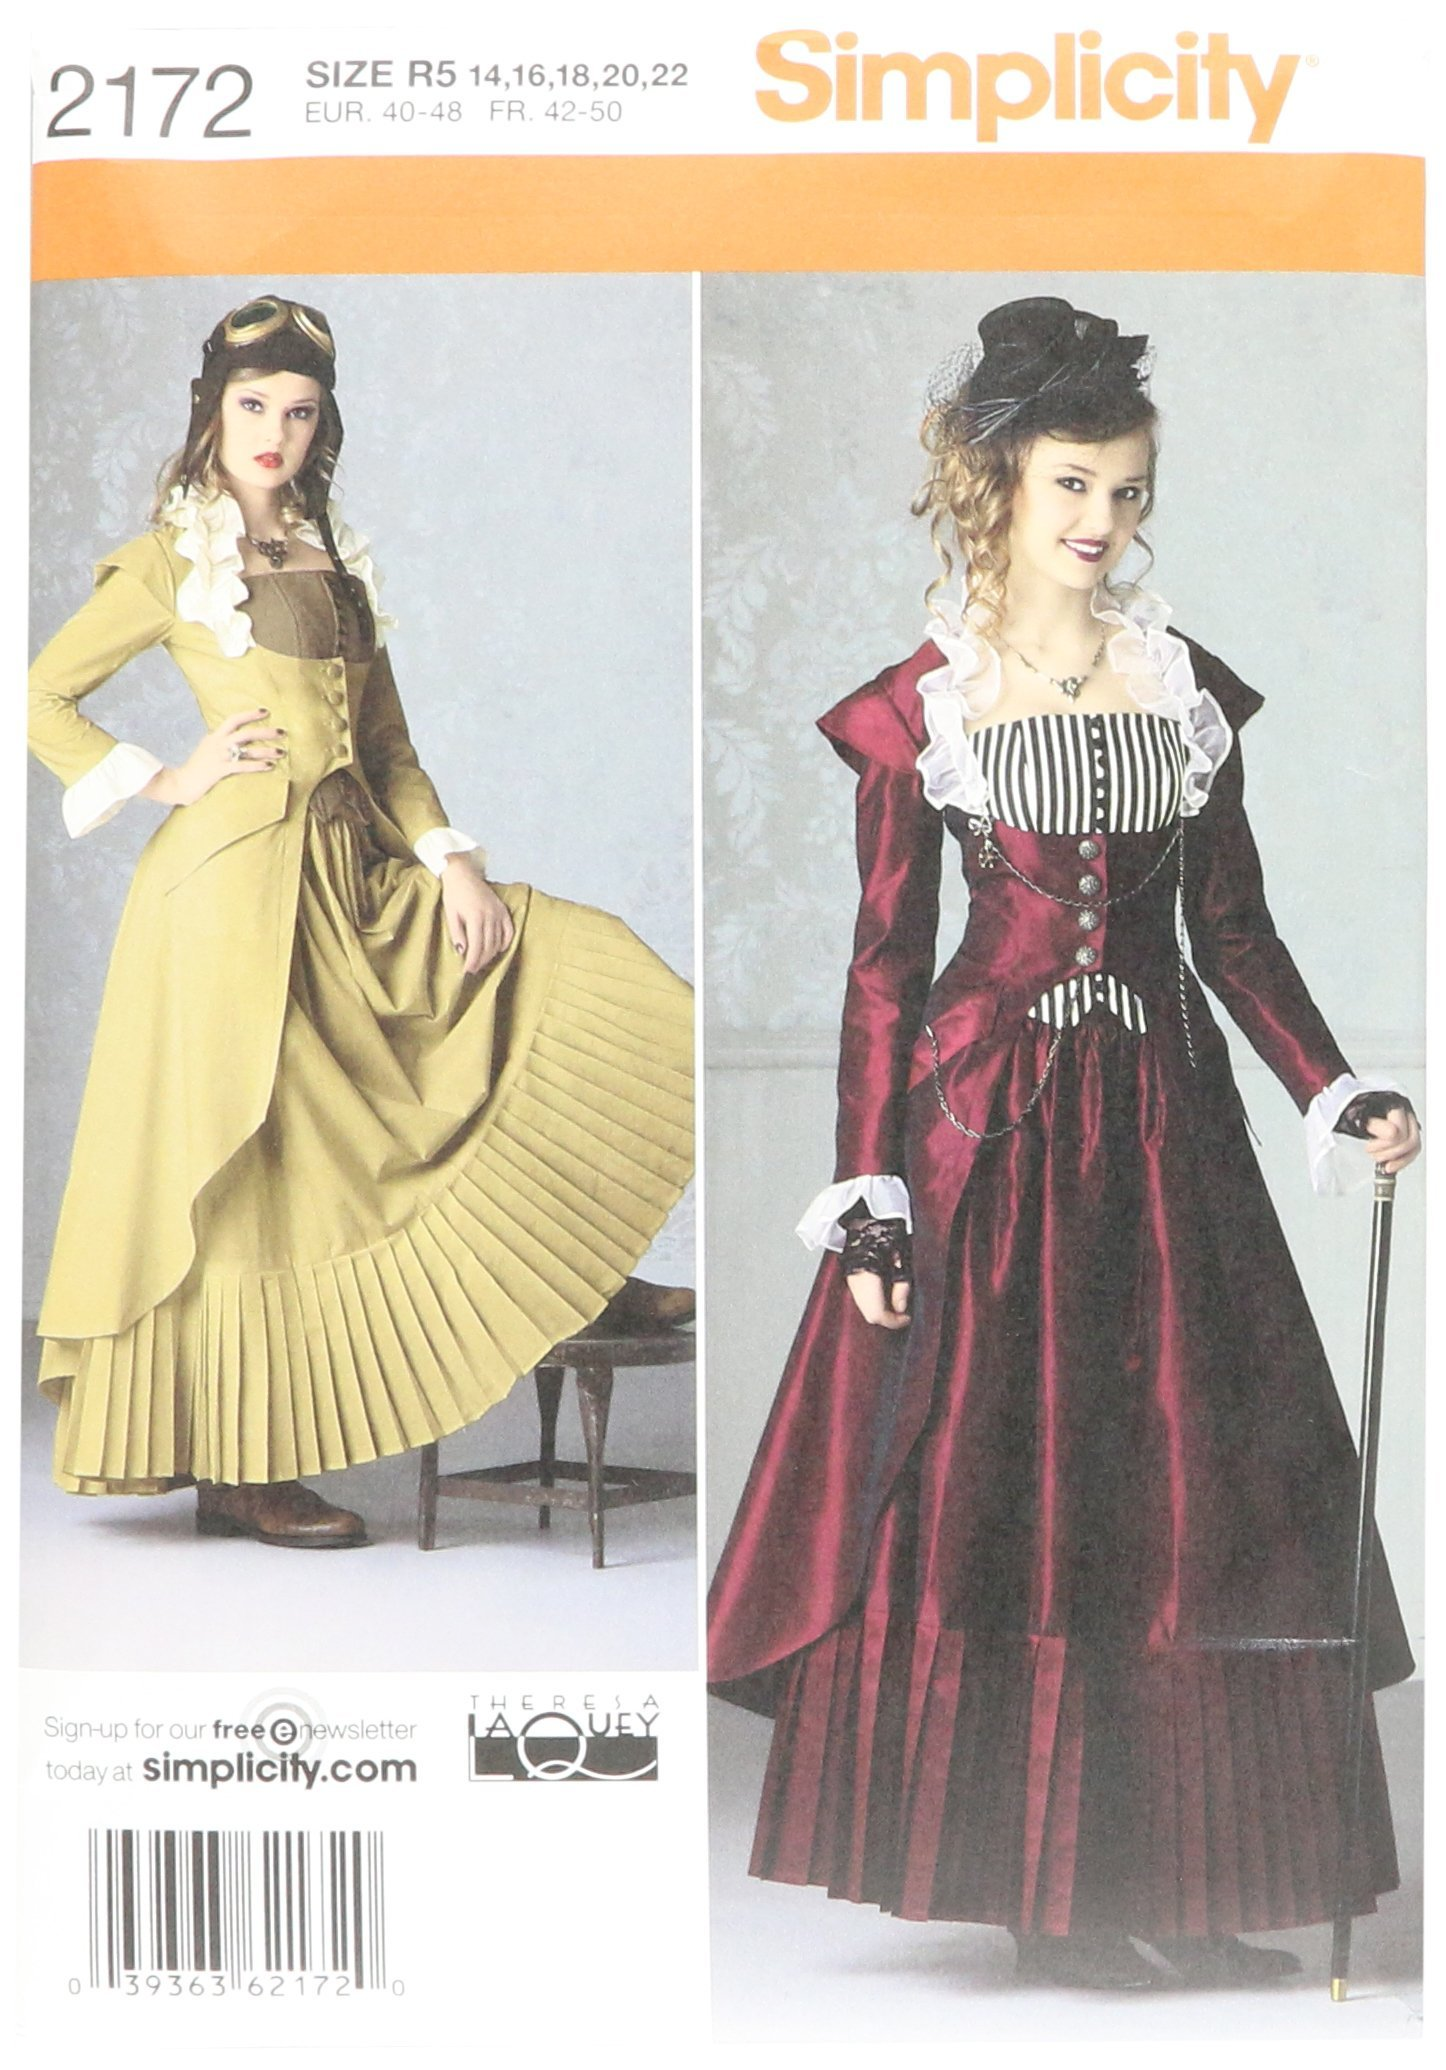 Simplicity Patterns Sale Awesome Inspiration Design